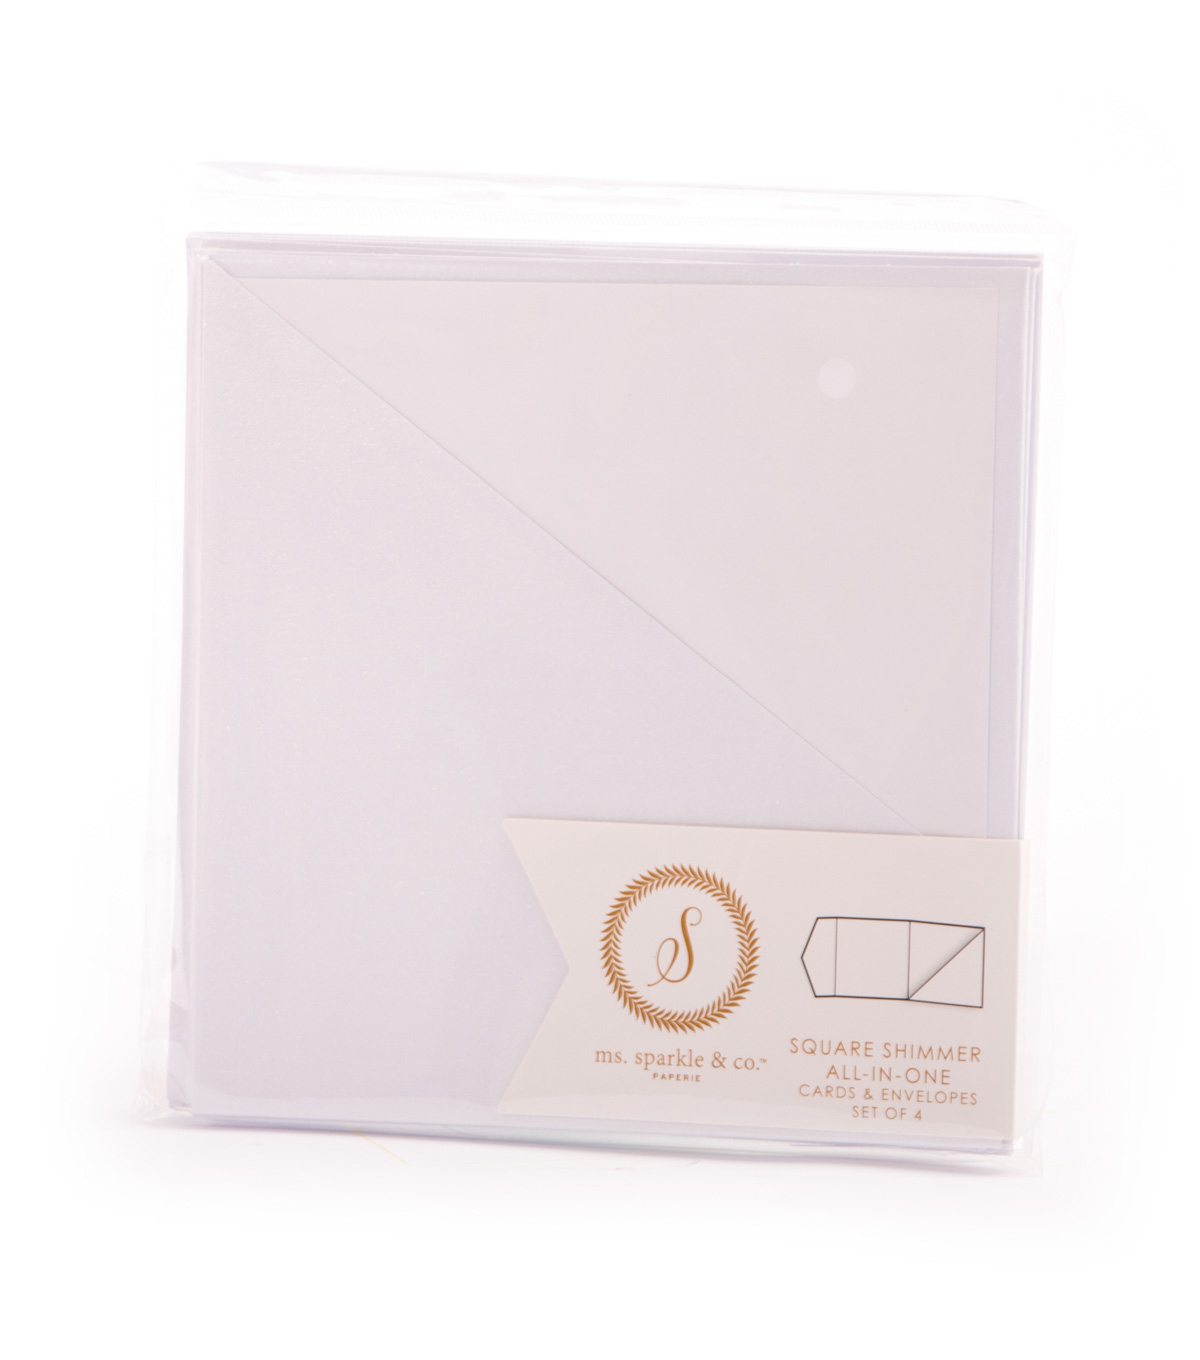 Ms. Sparkle & Co. All In One Shimmer Square Cards & Envelopes-White